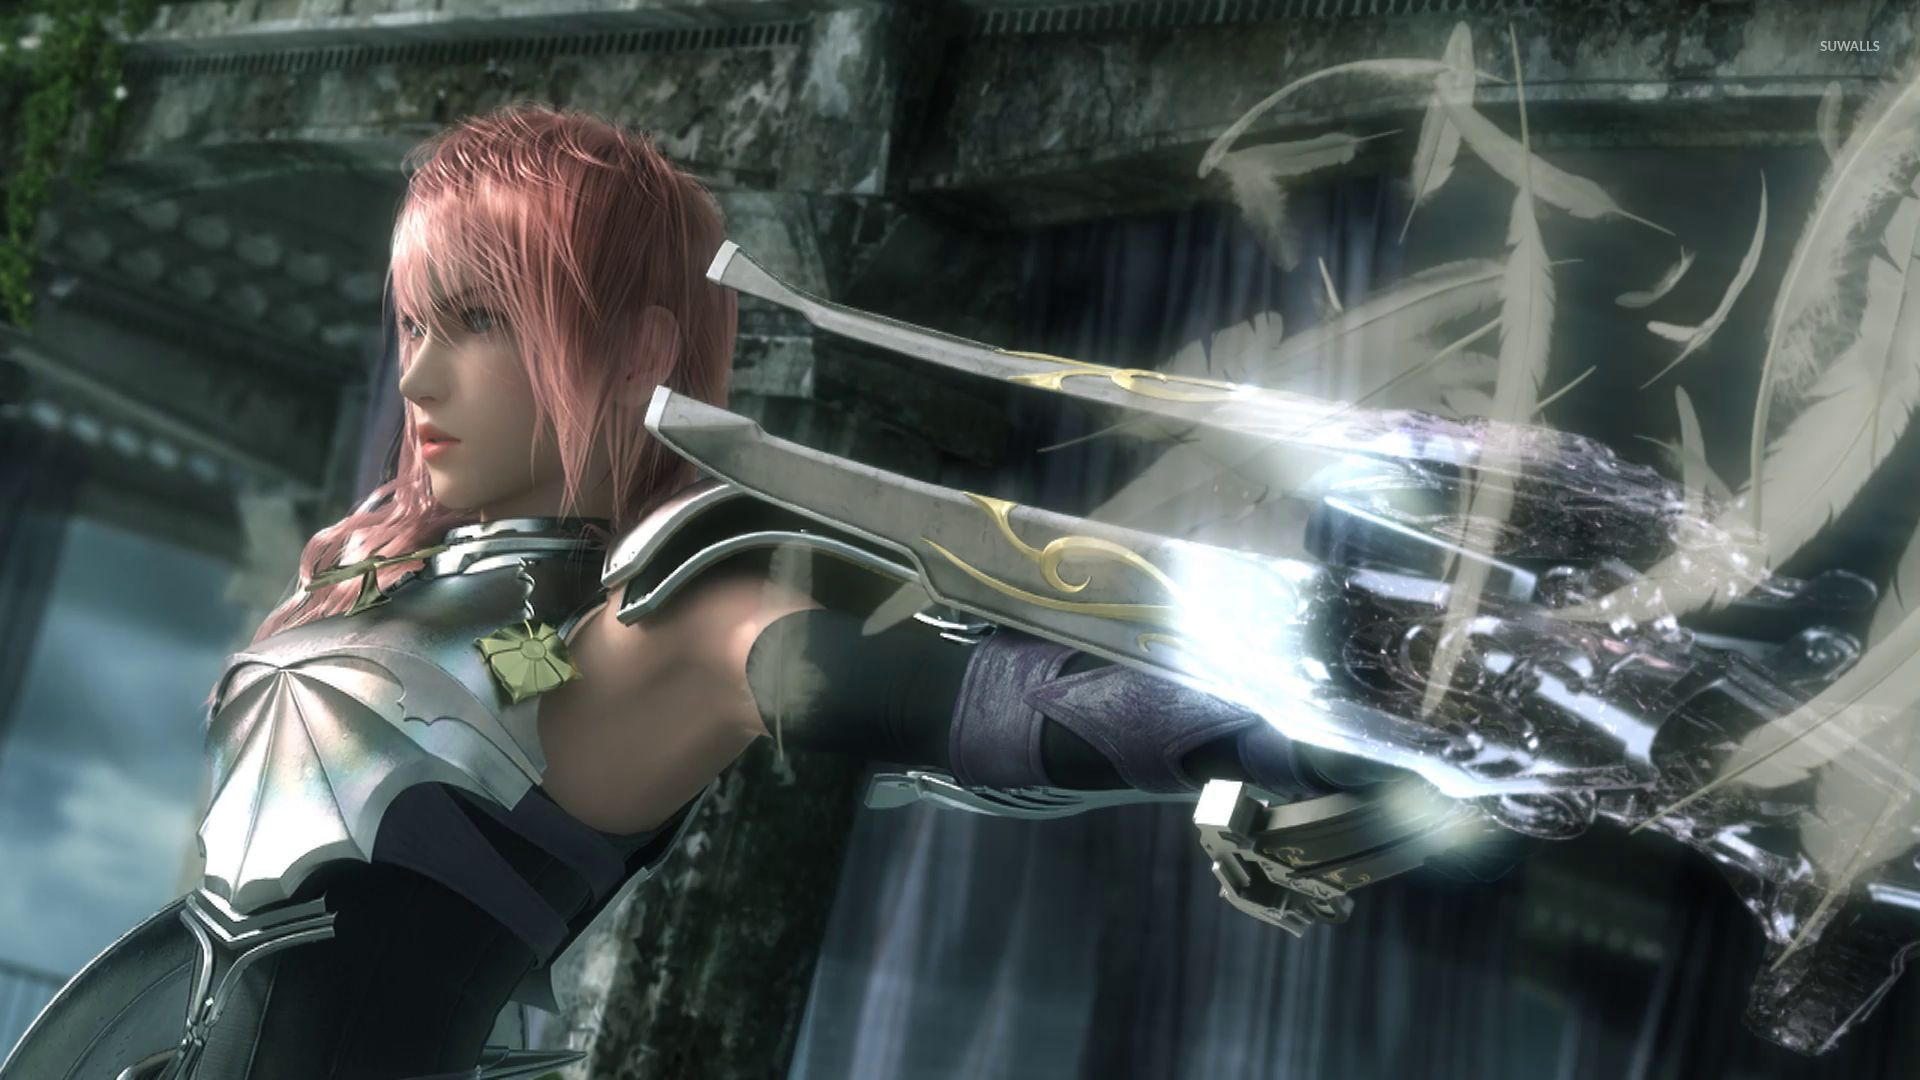 lightning - final fantasy xiii-2 [2] wallpaper - game wallpapers